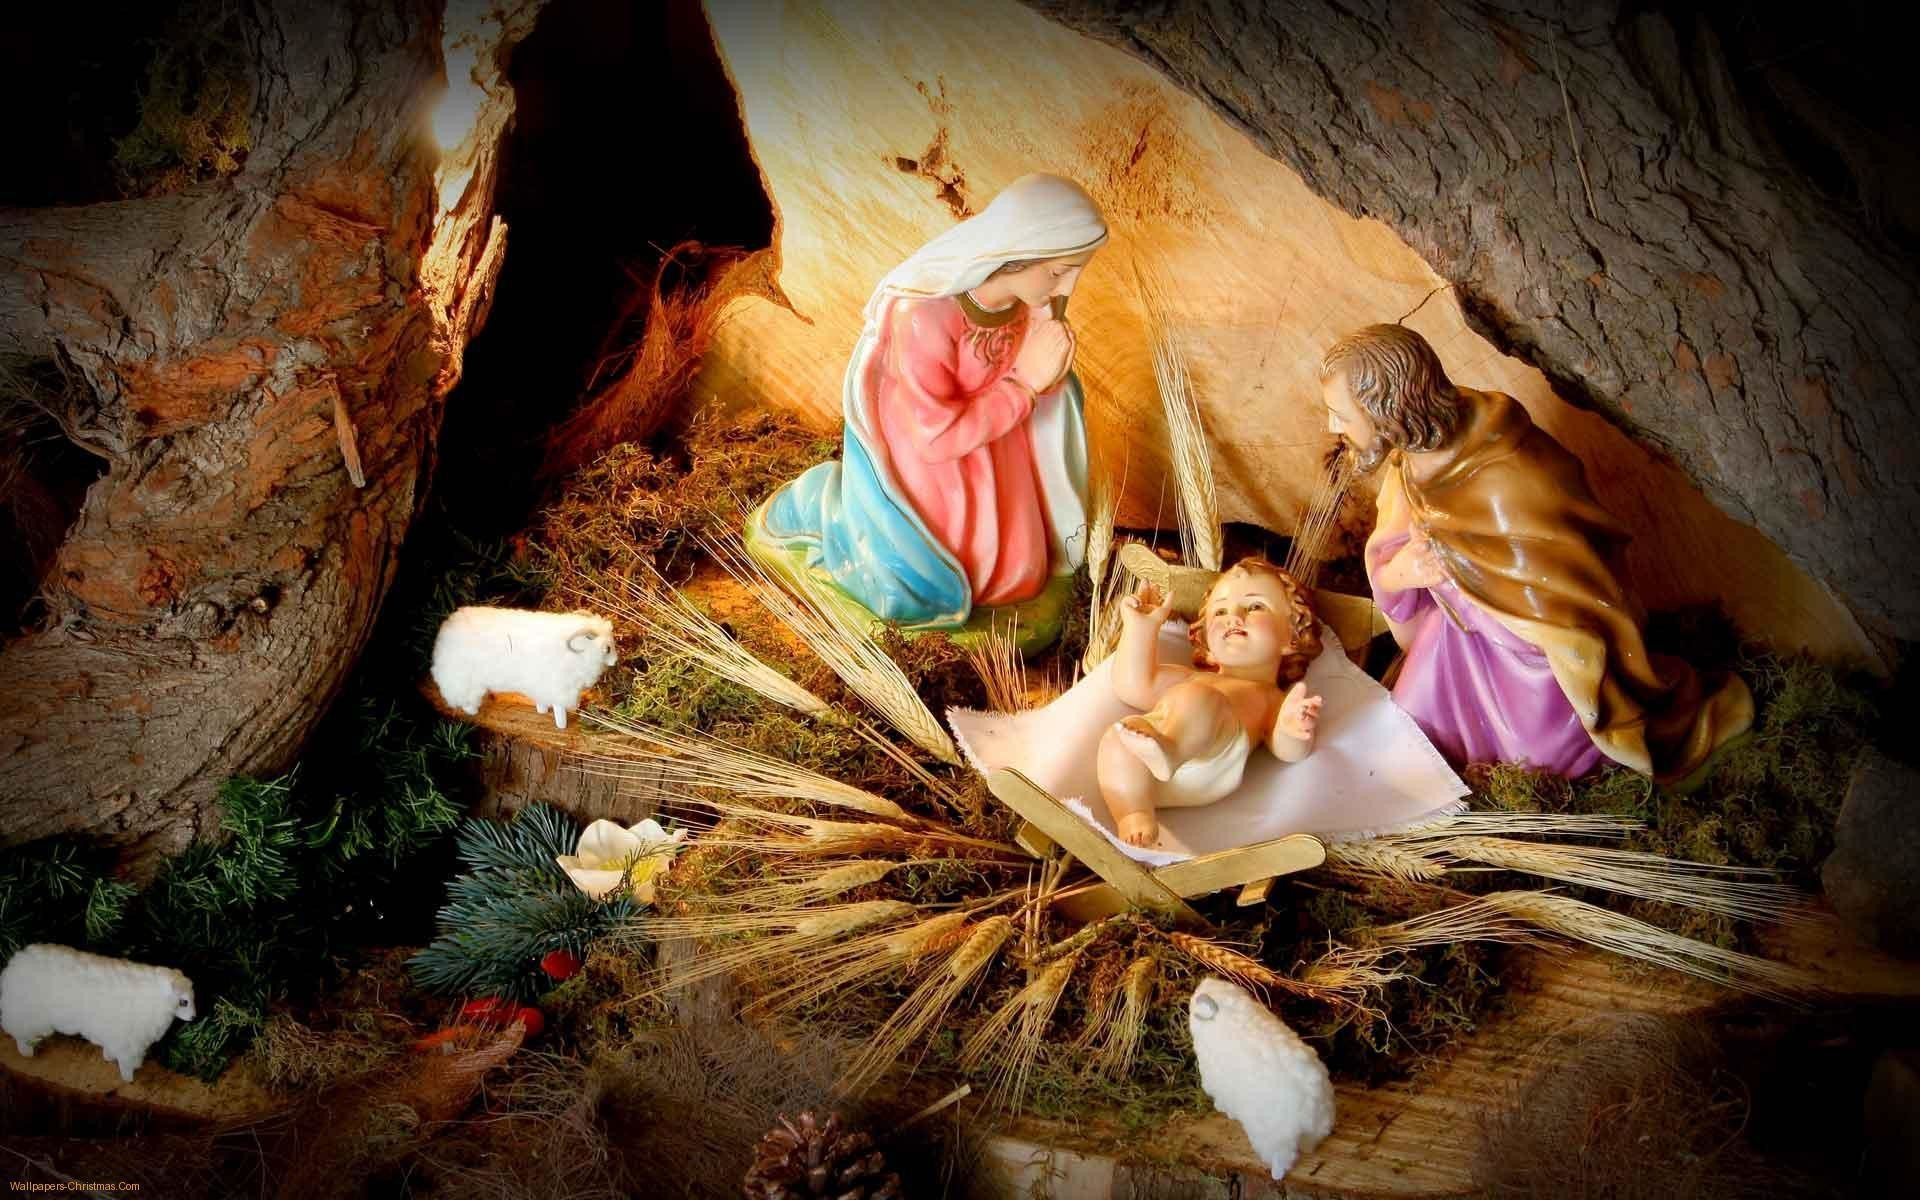 Res: 1920x1200, Page 525 | Wallpapers Drum Christmas Nativity Scene Handmade X ..